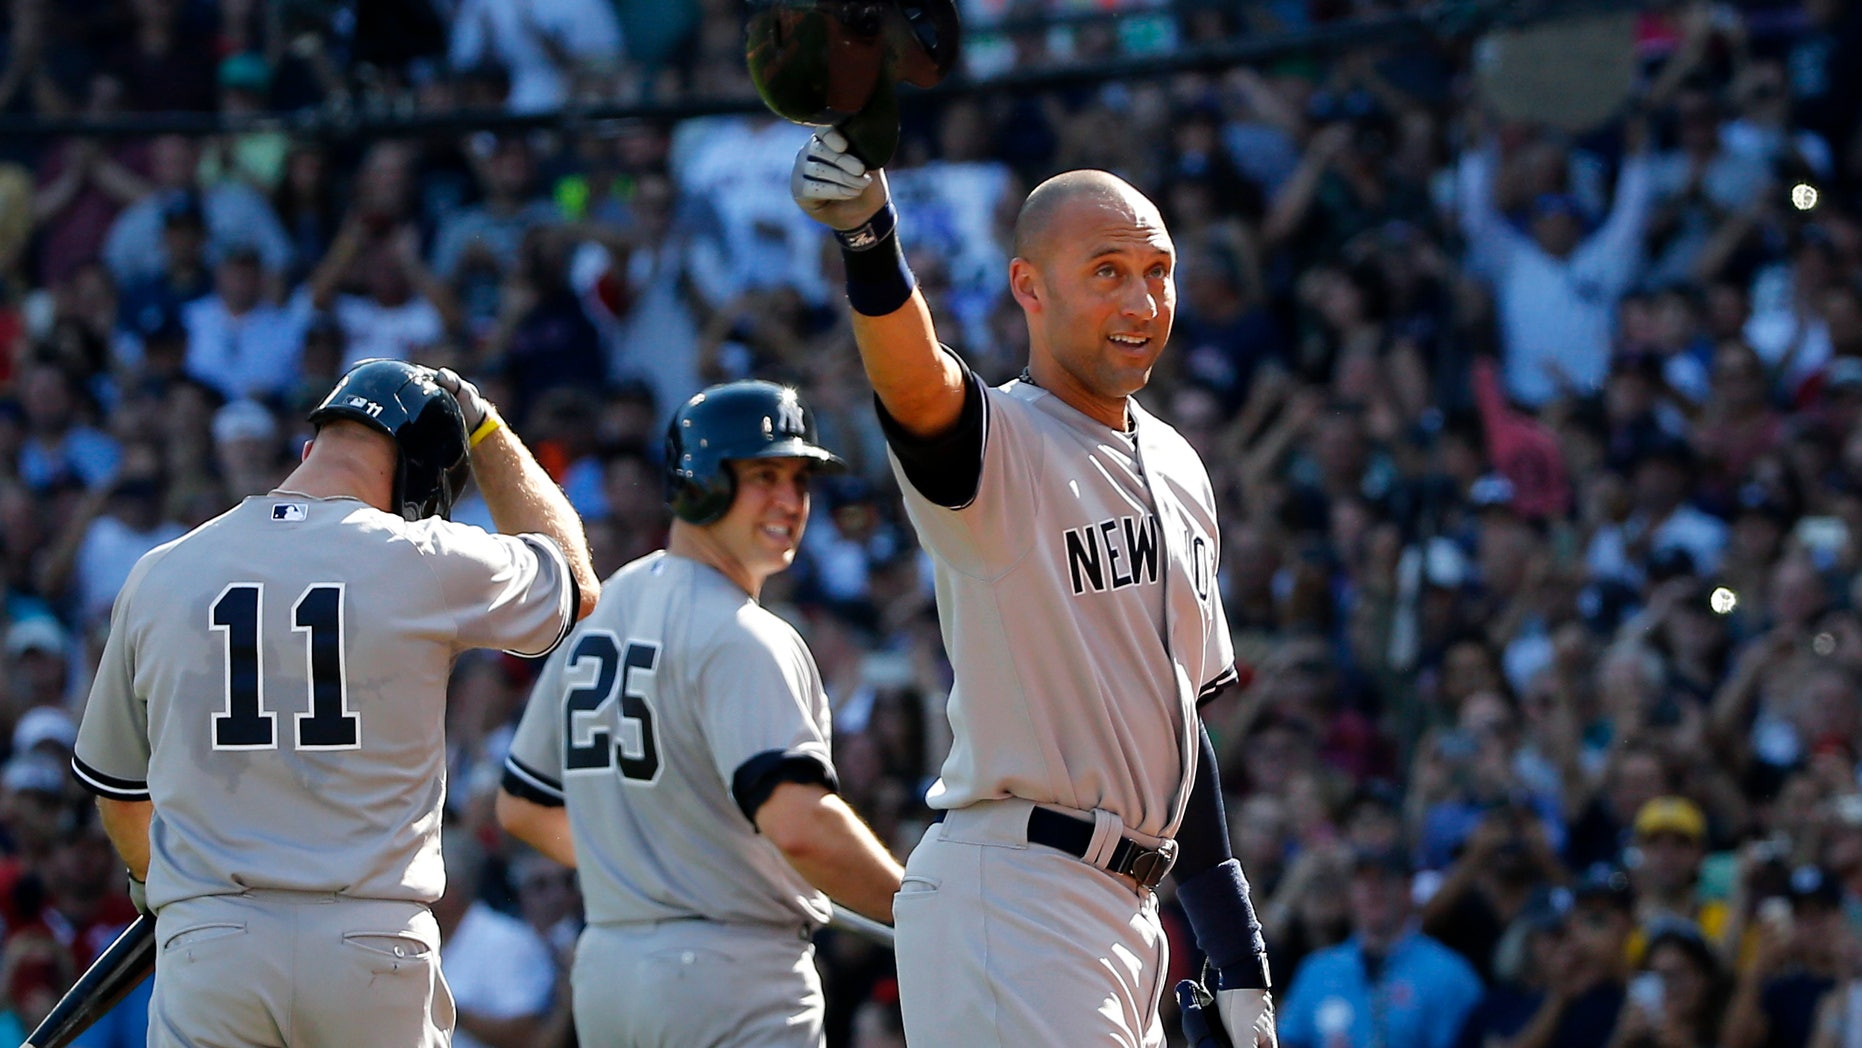 Sept. 28, 2014: New York Yankees designated hitter Derek Jeter tips his cap to the crowd at Fenway Park after coming out of the baseball game for a pinch-runner in the third inning against the Boston Red Sox in a baseball game.